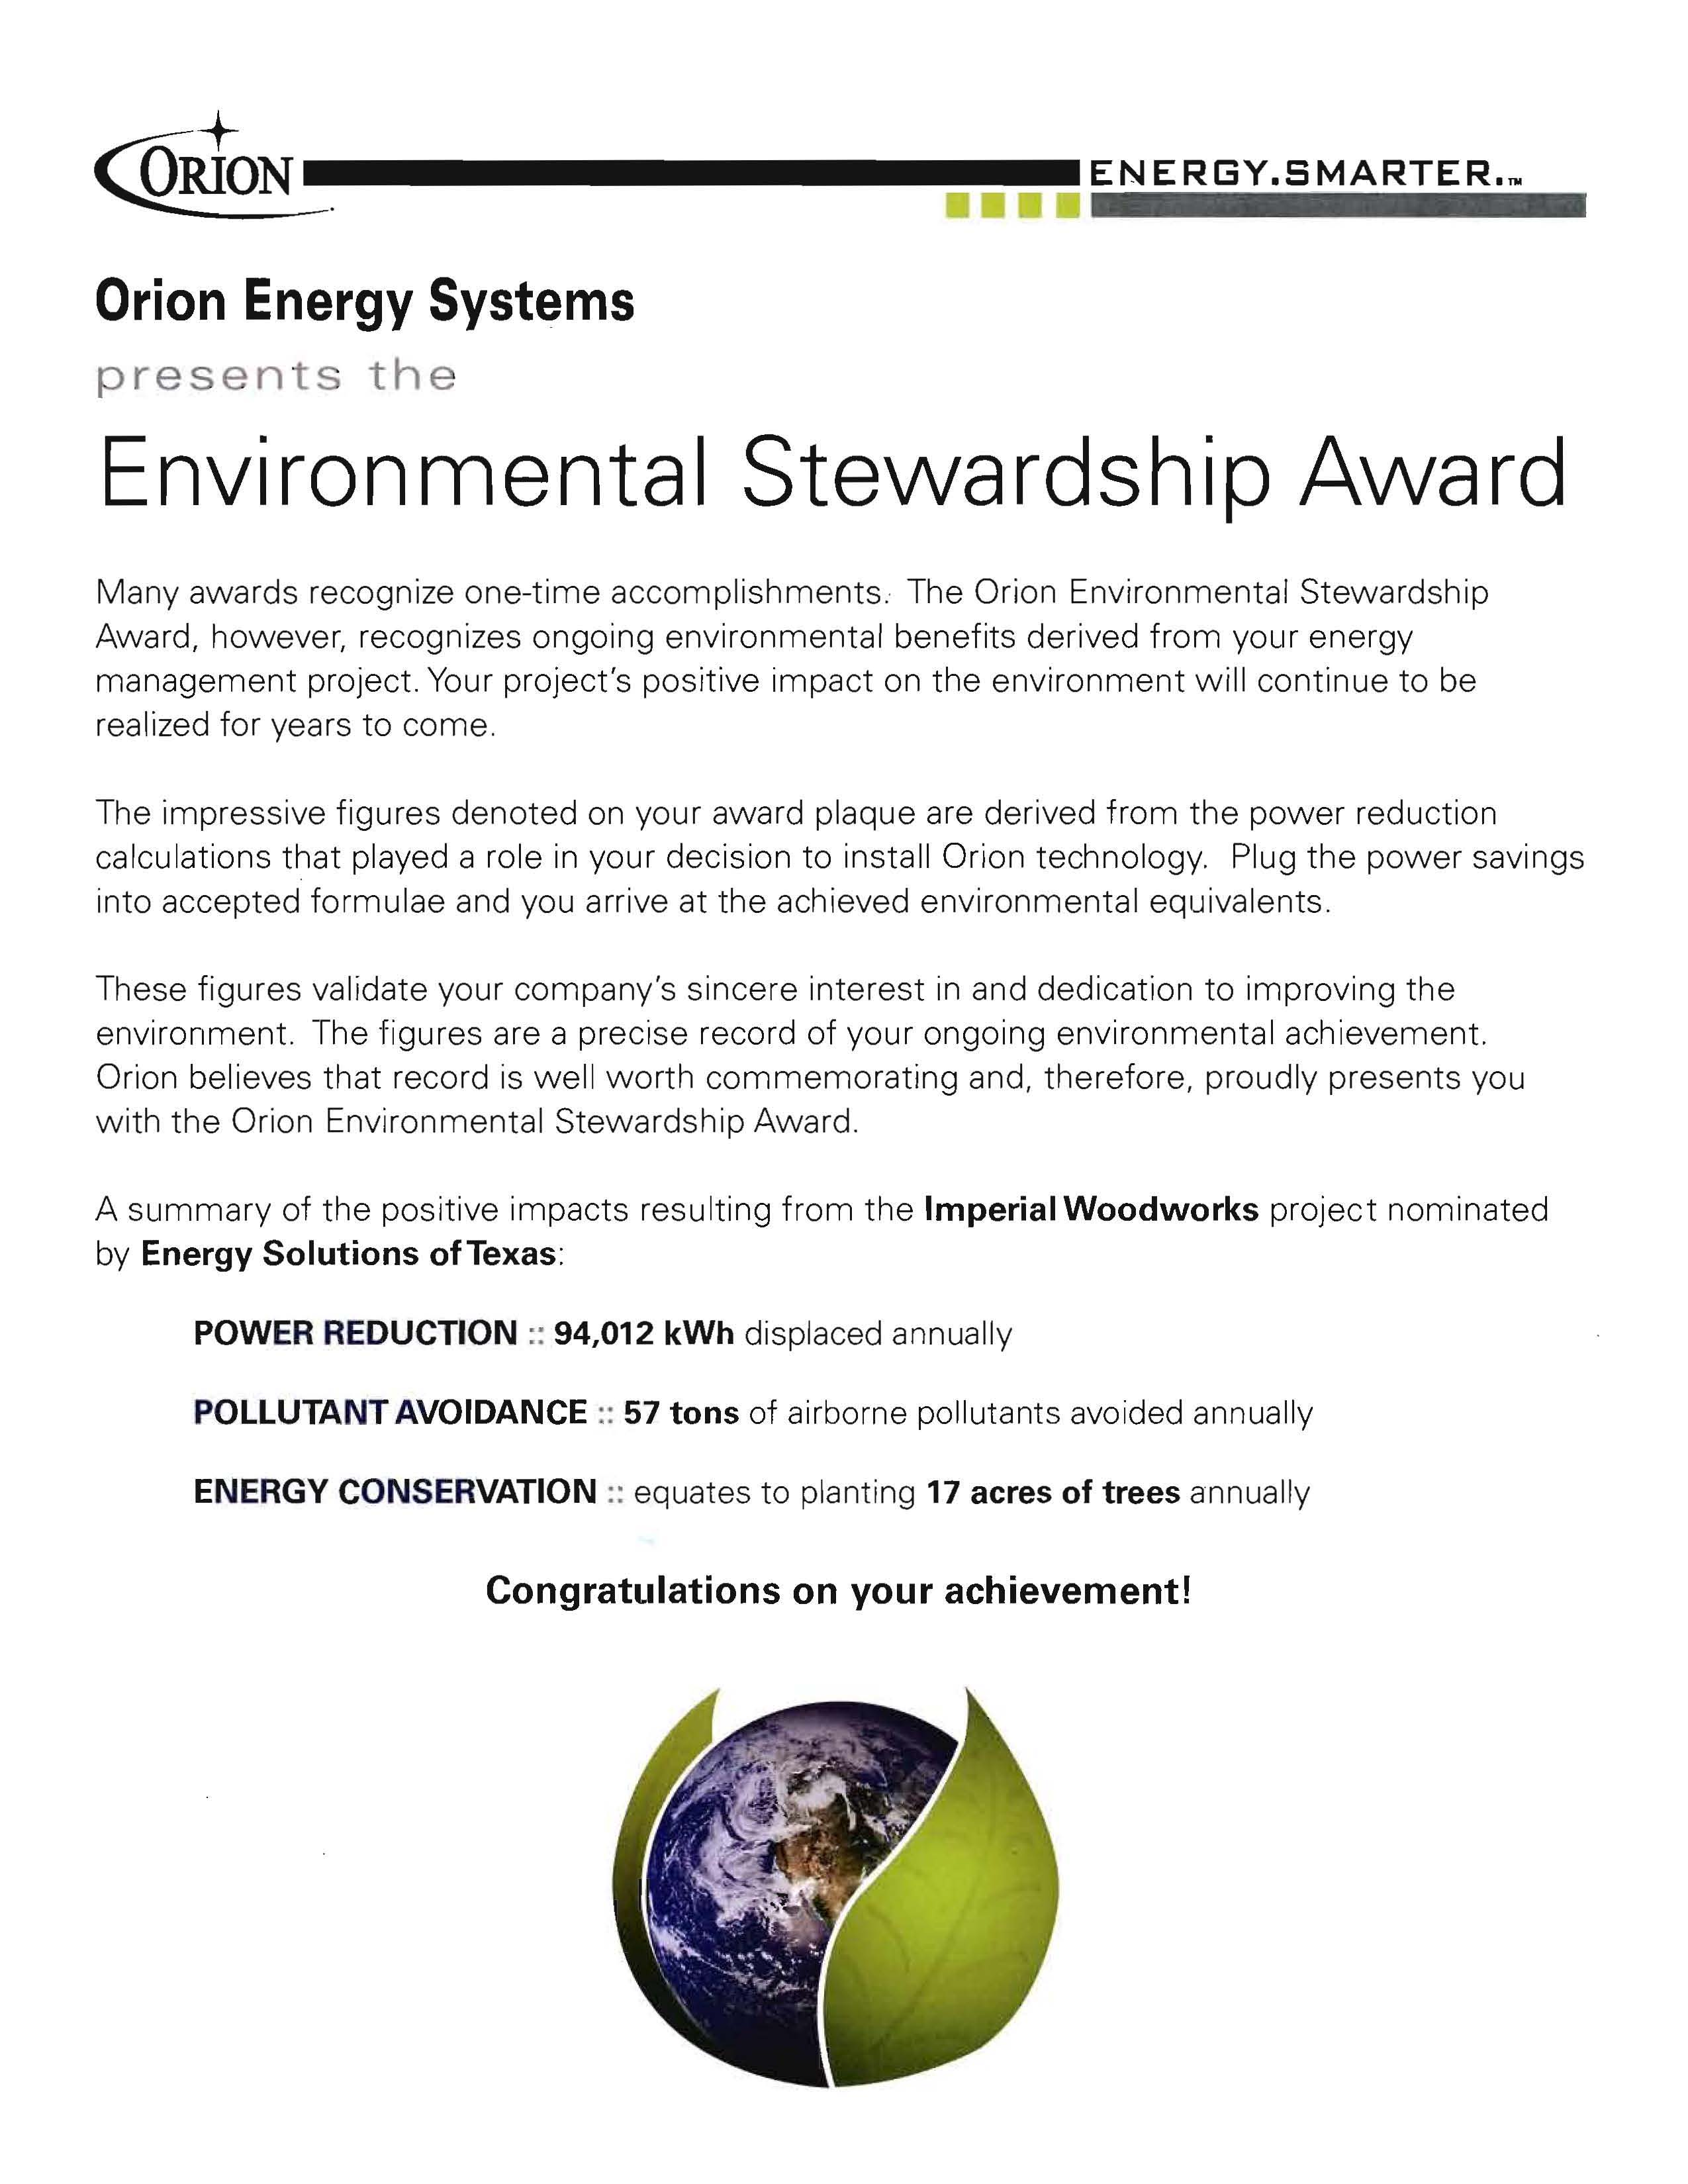 Environmental Stewardship and Conservation